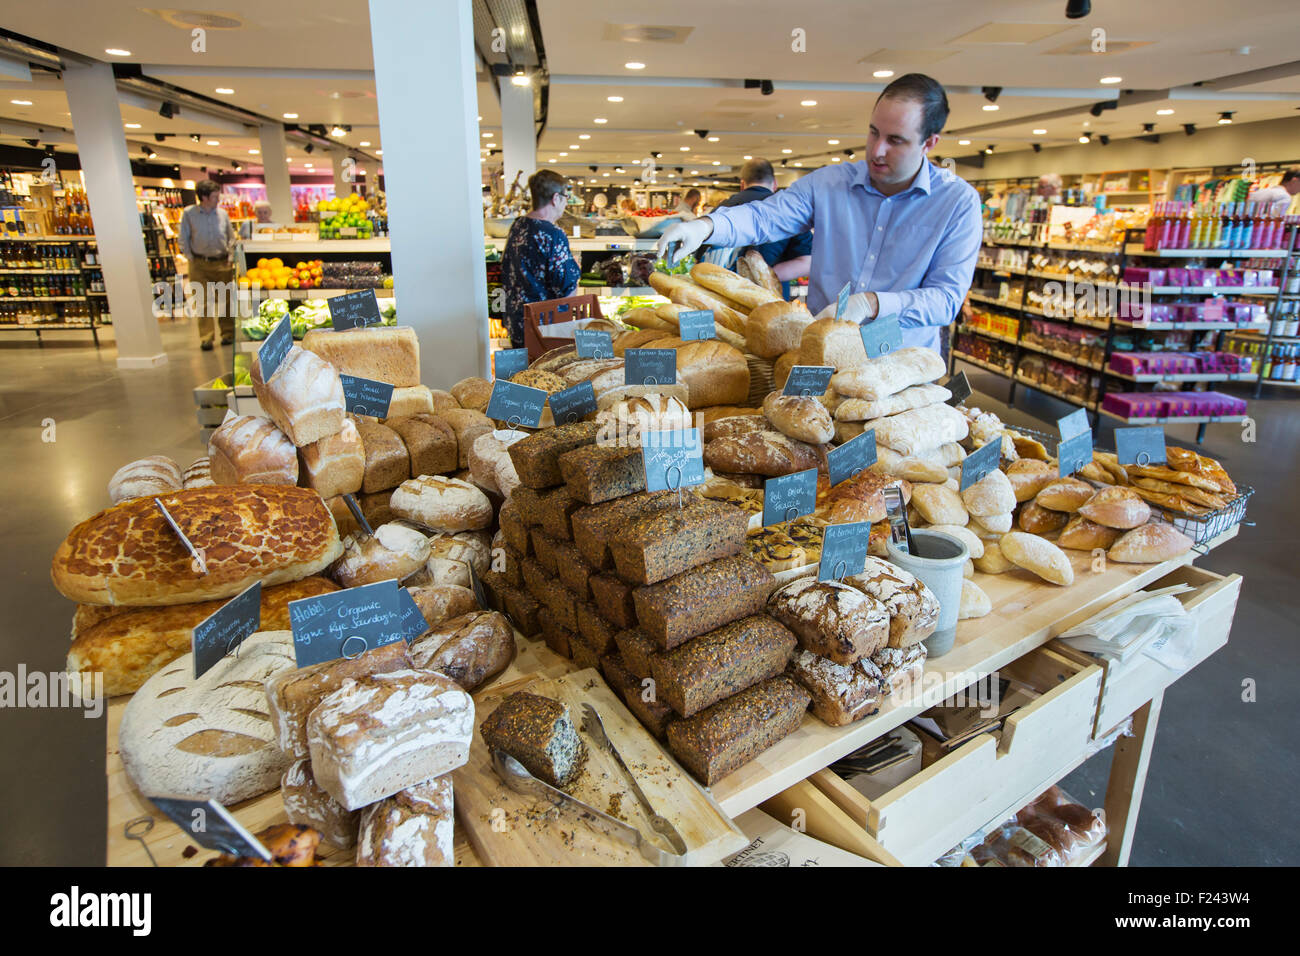 the-farm-shop-at-the-new-gloucester-service-station-on-the-m5-motorway-F243W4.jpg